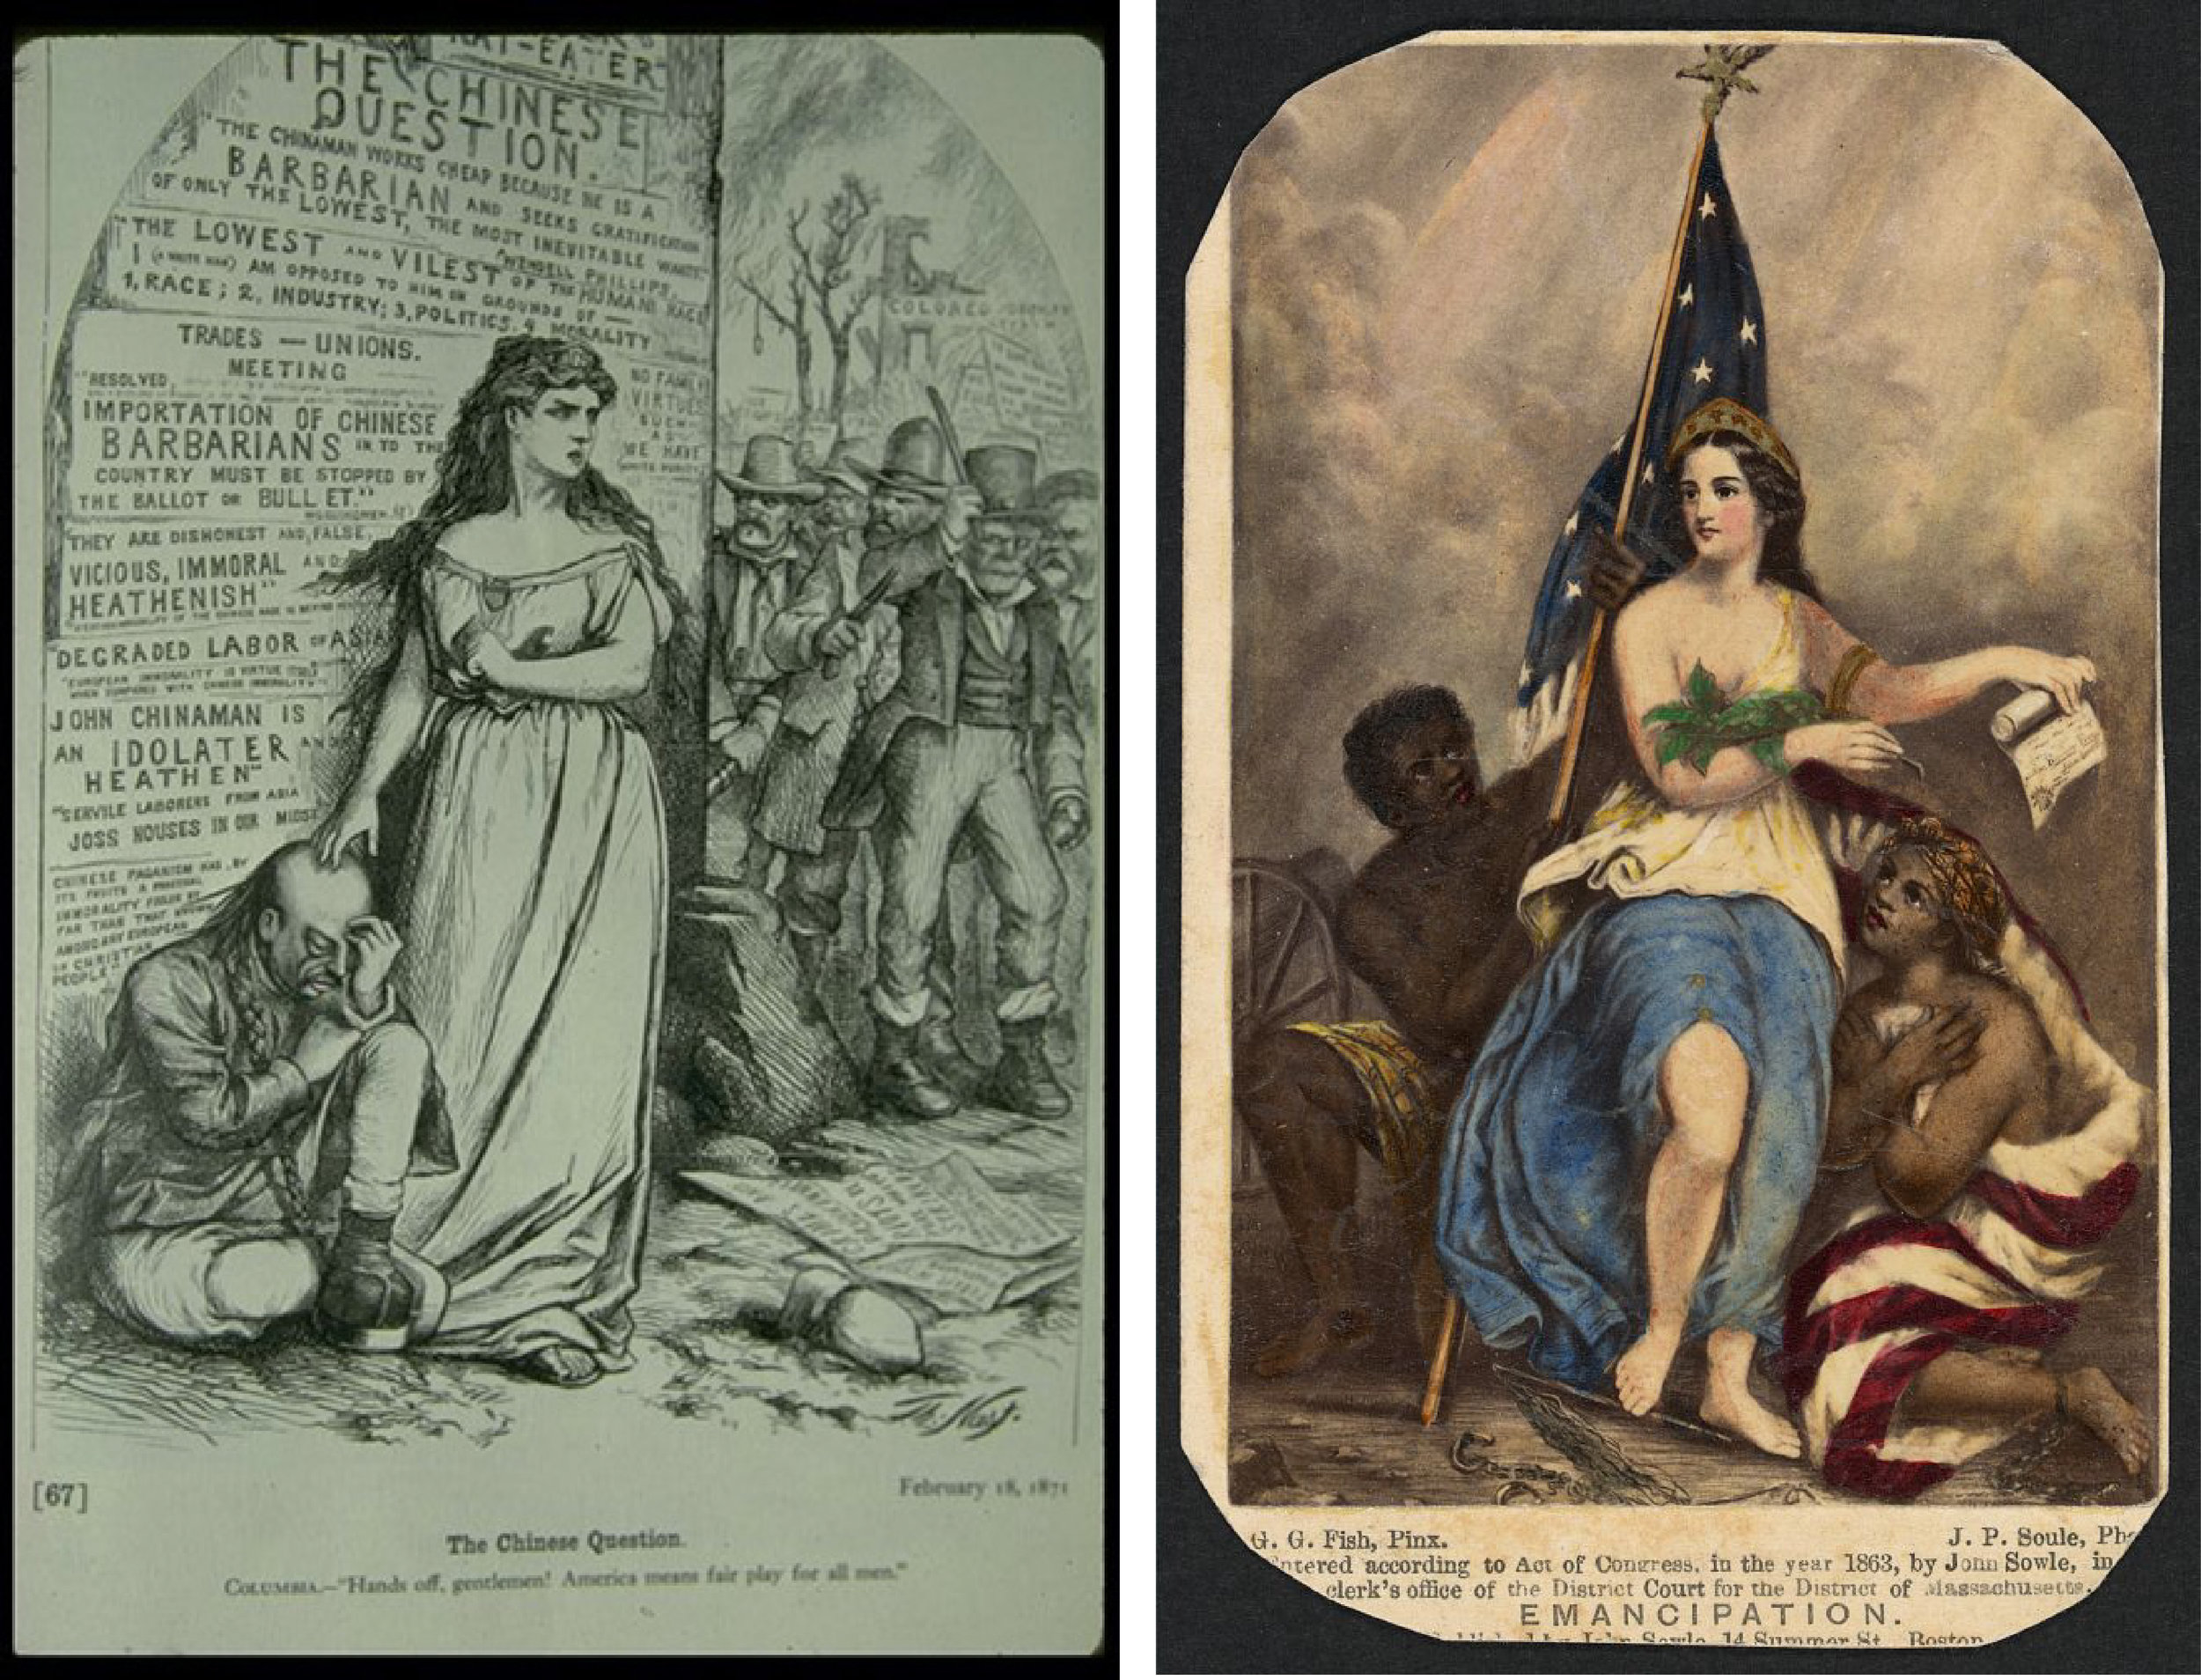 Two views of Columbia standing with the oppressed: on the left, Thomas Nast's 1871 commentary on anti-Chinese xenophobia; on the right, John Soule's 1861 work showing Columbia fighting for emancipation.